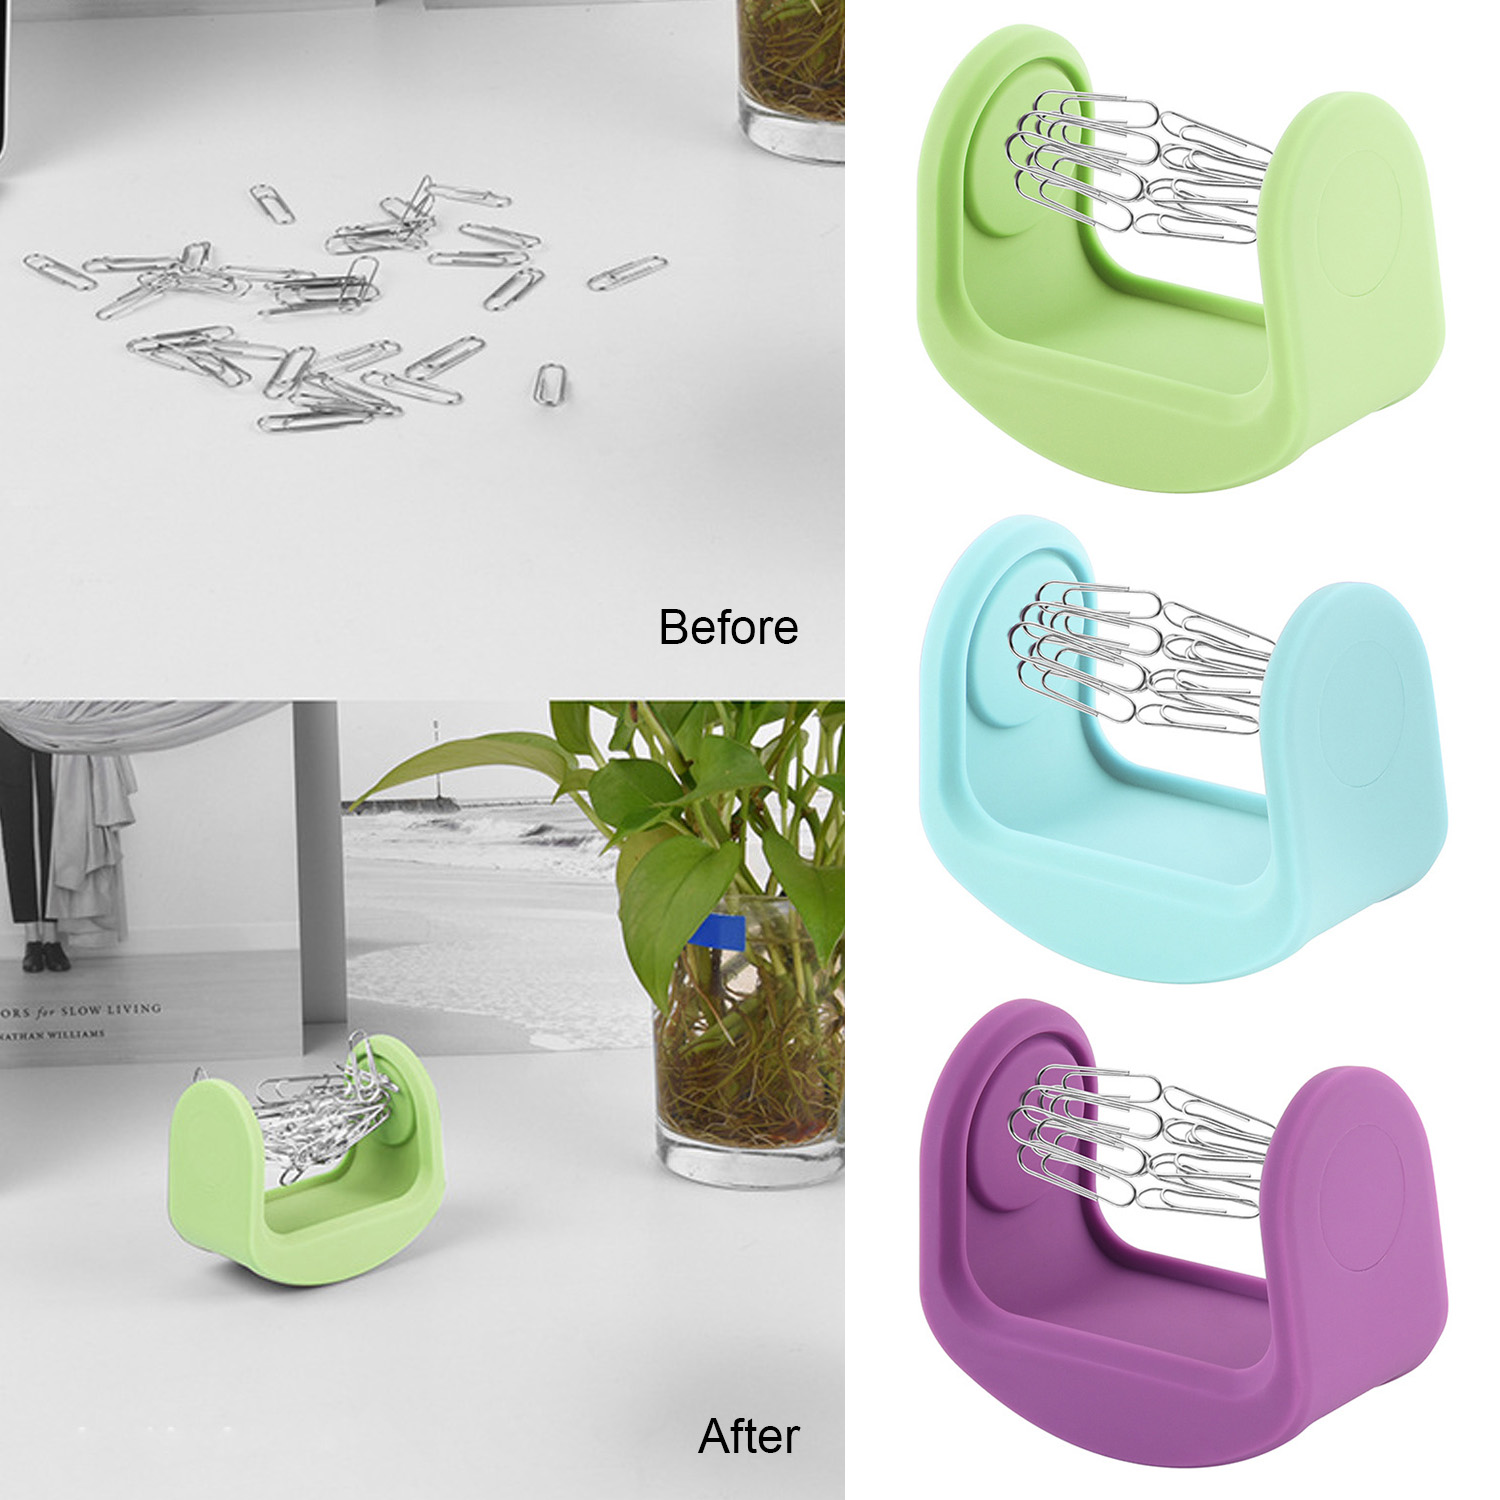 Magnetic Silicone Paper Clip Swinging Holder Office Desk Storage Organizer Desk Toy Decor